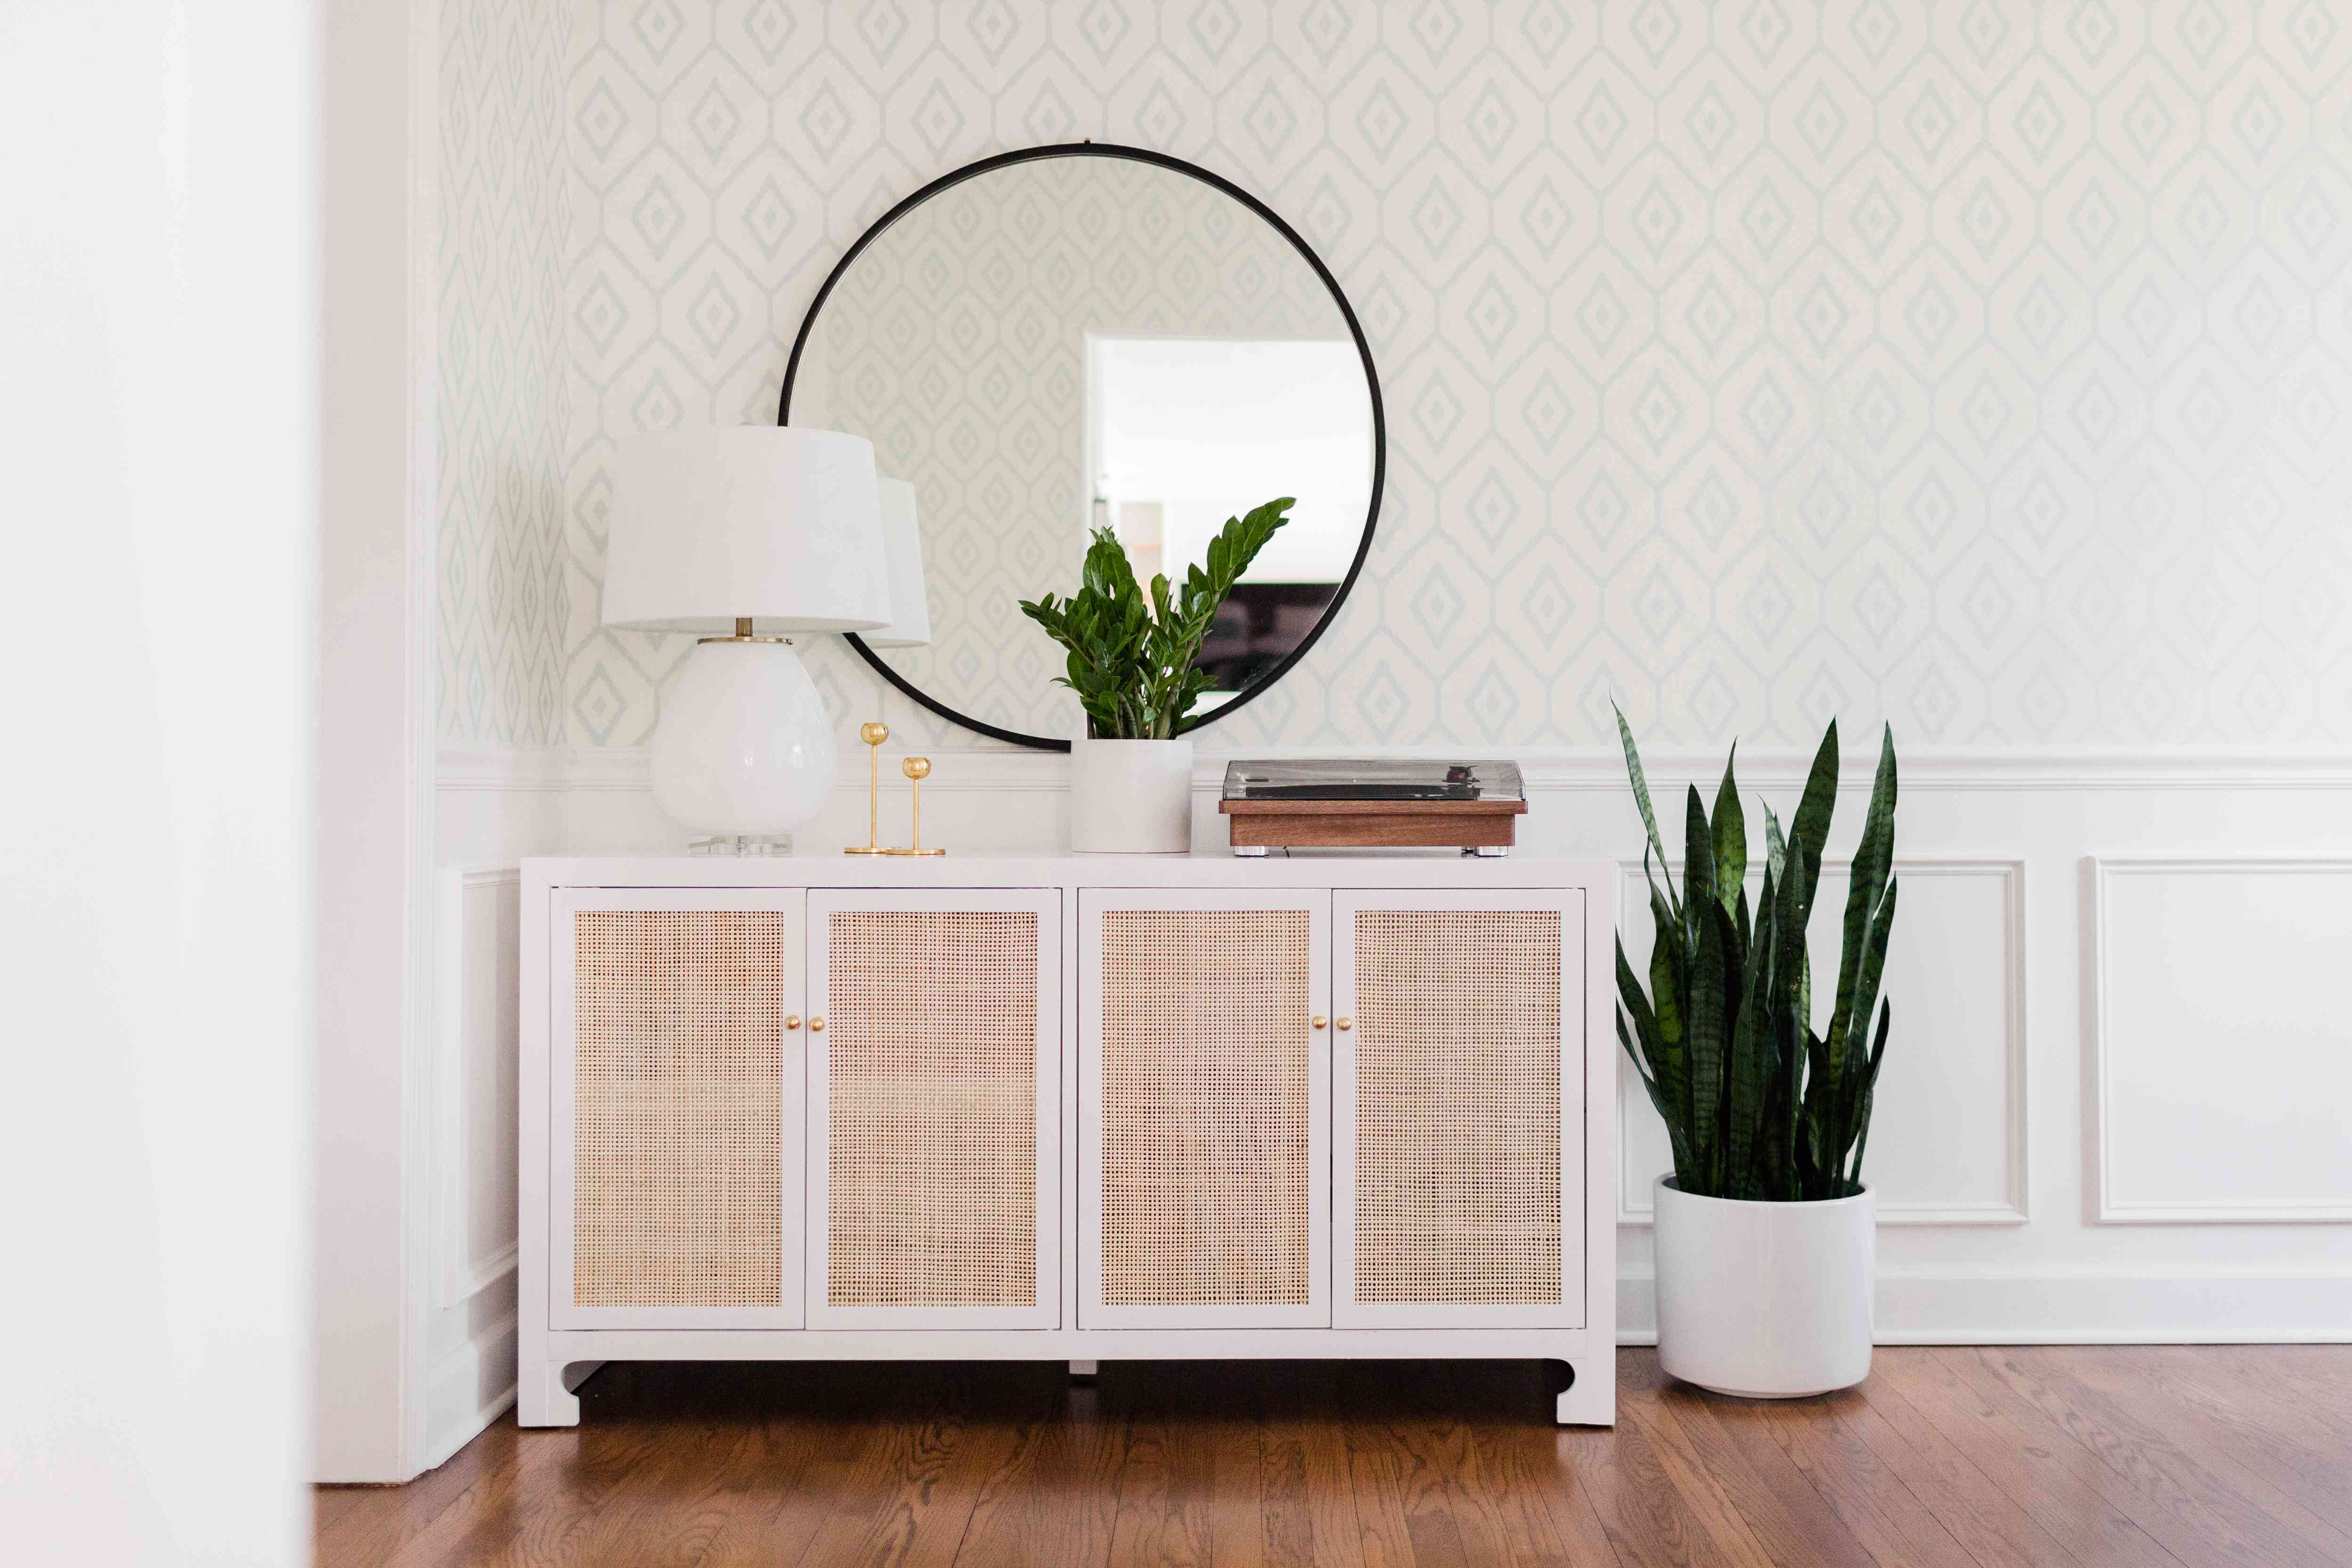 mirror on a wall in a light, airy interior